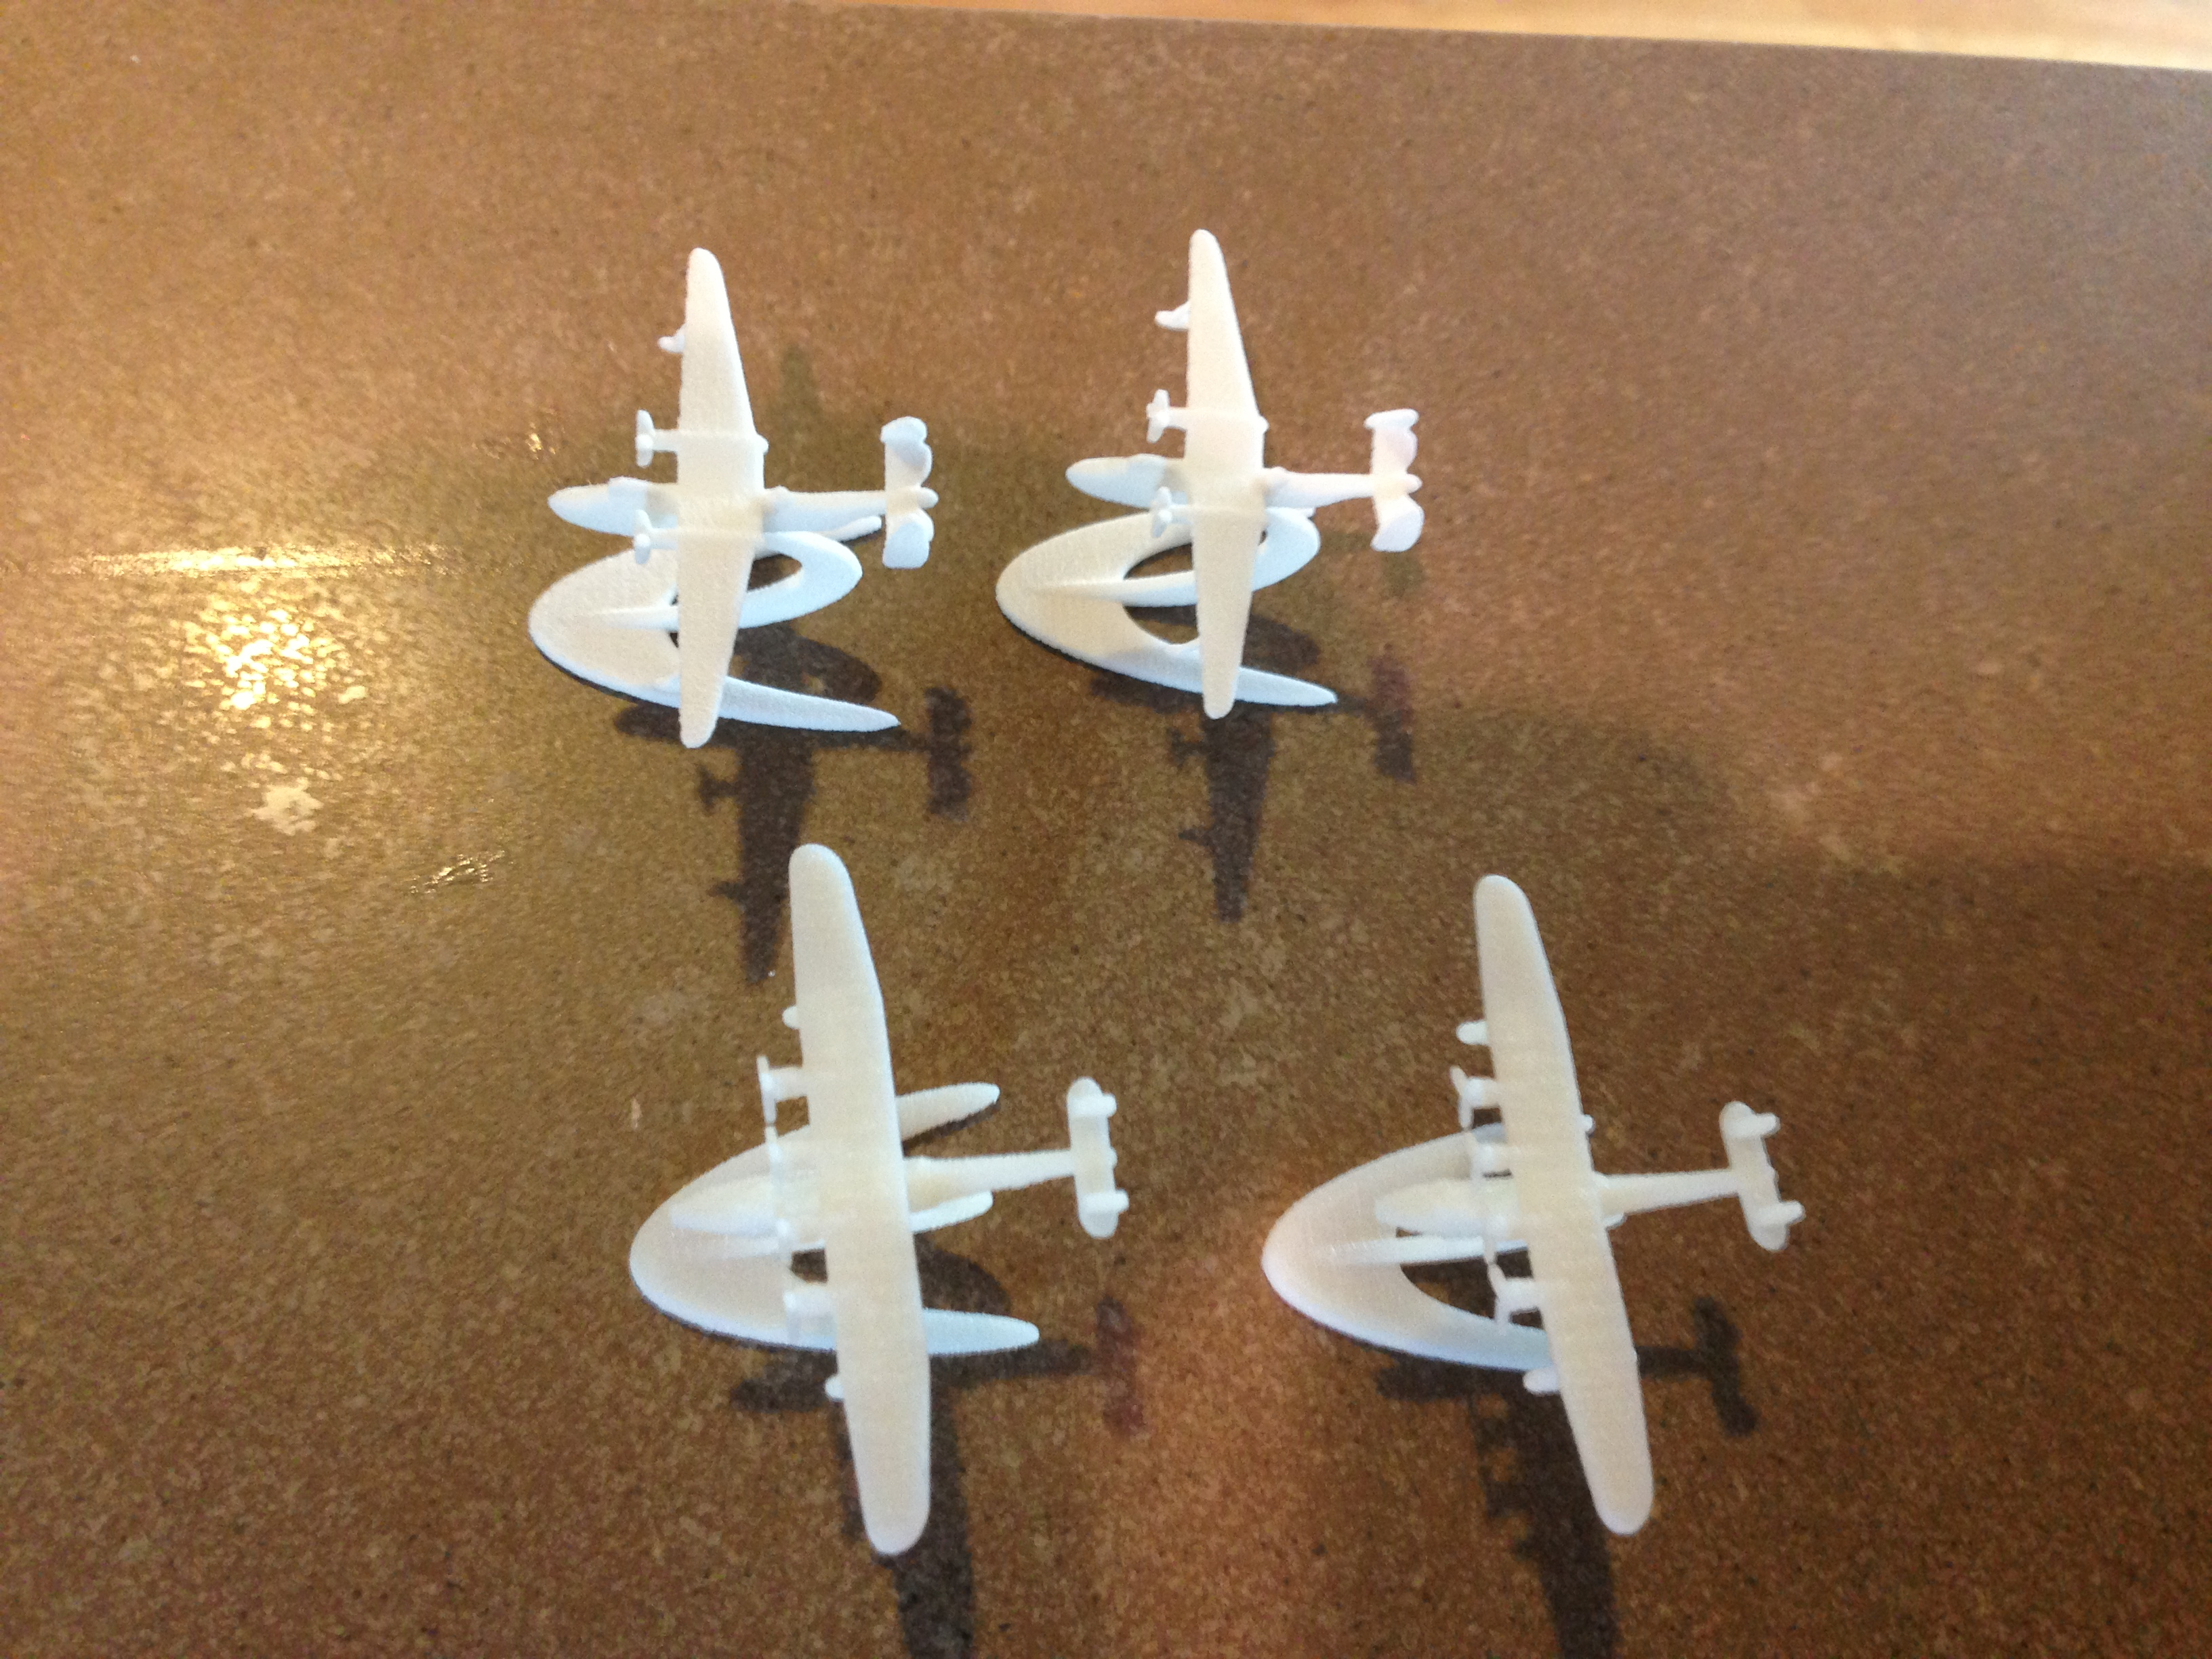 New And Unusual Pieces For Axis Amp Allies And Where To Find